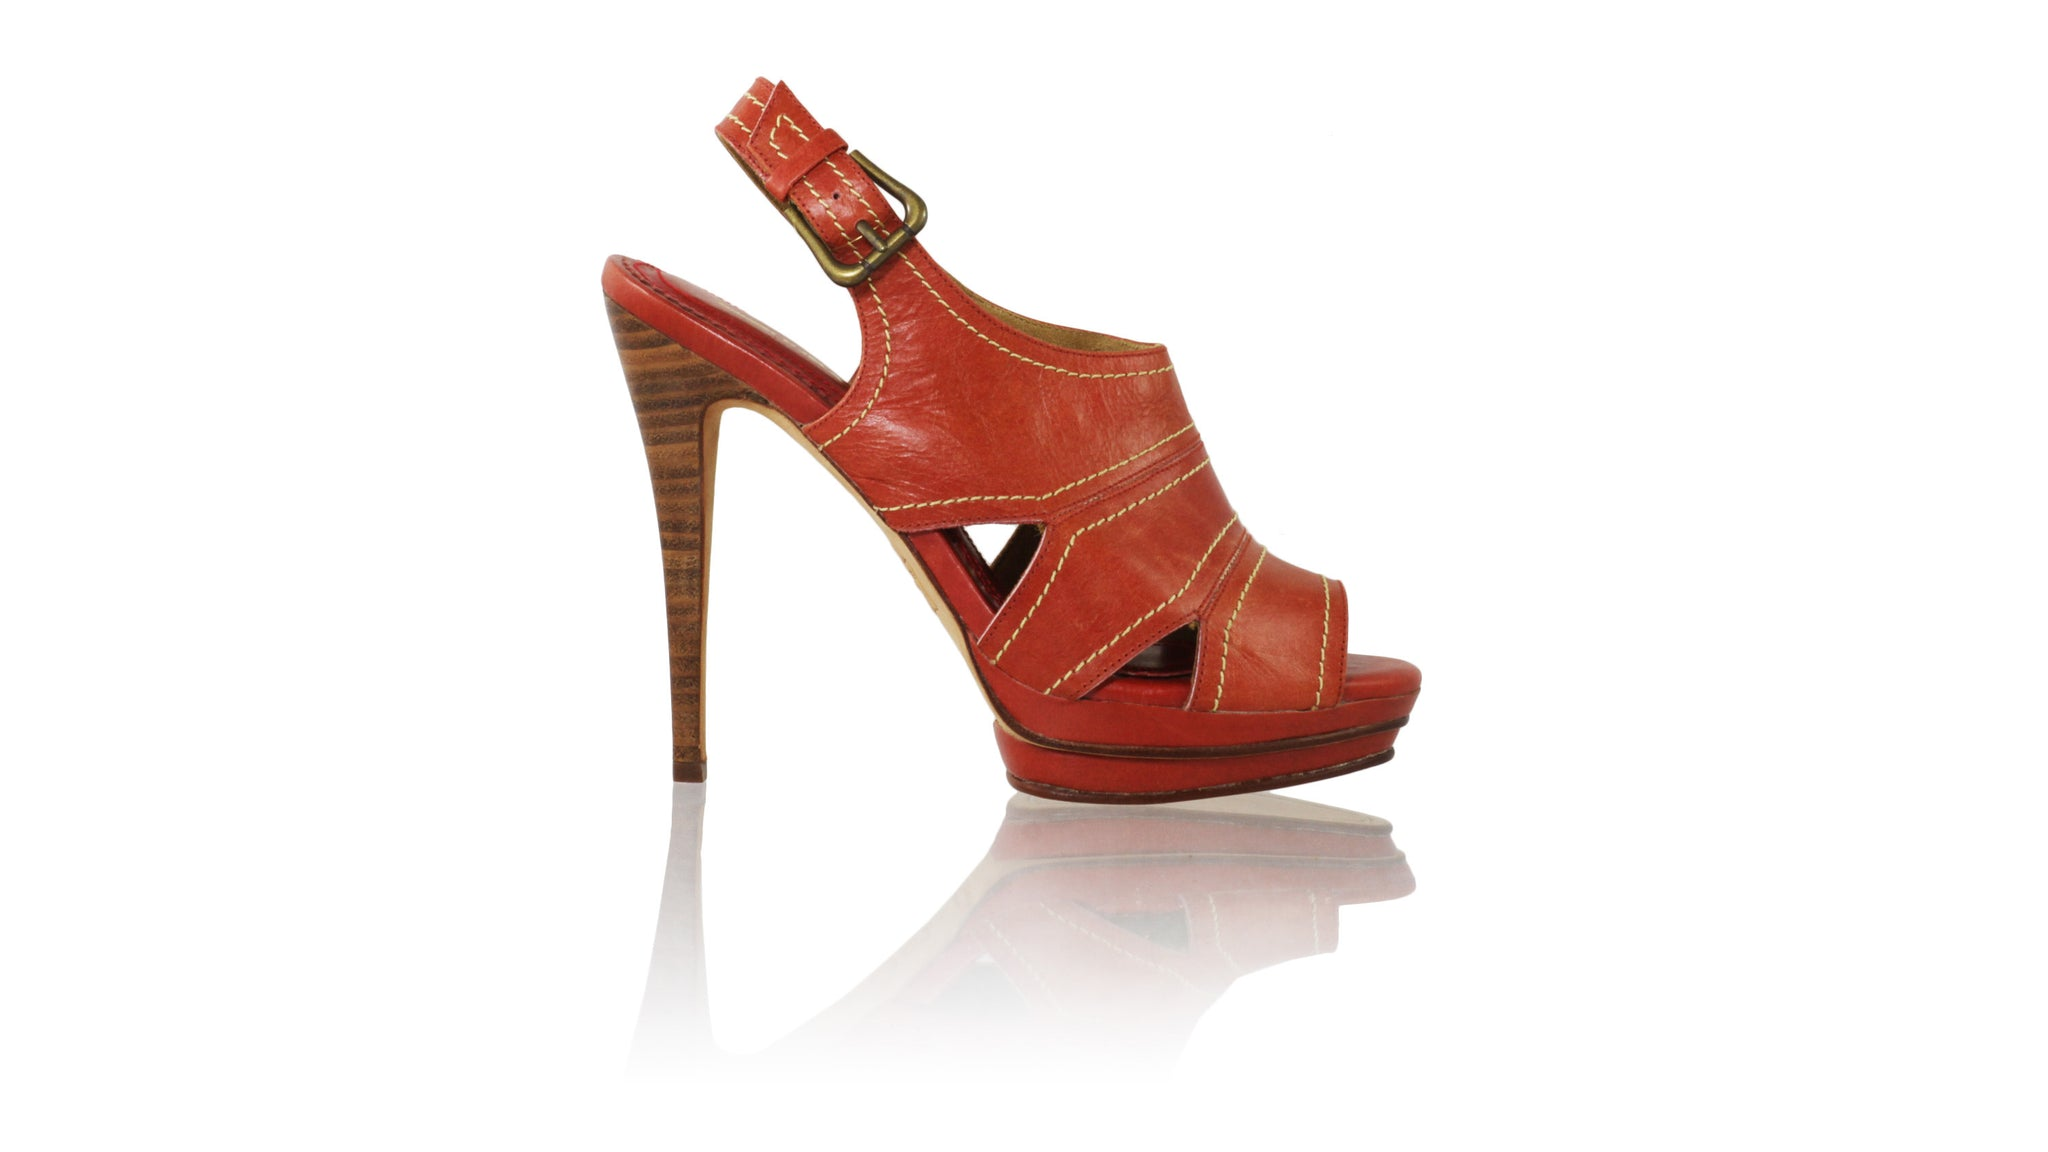 Leather-shoes-Anastasia 138mm SH PF - Red-sandals higheel-NILUH DJELANTIK-NILUH DJELANTIK